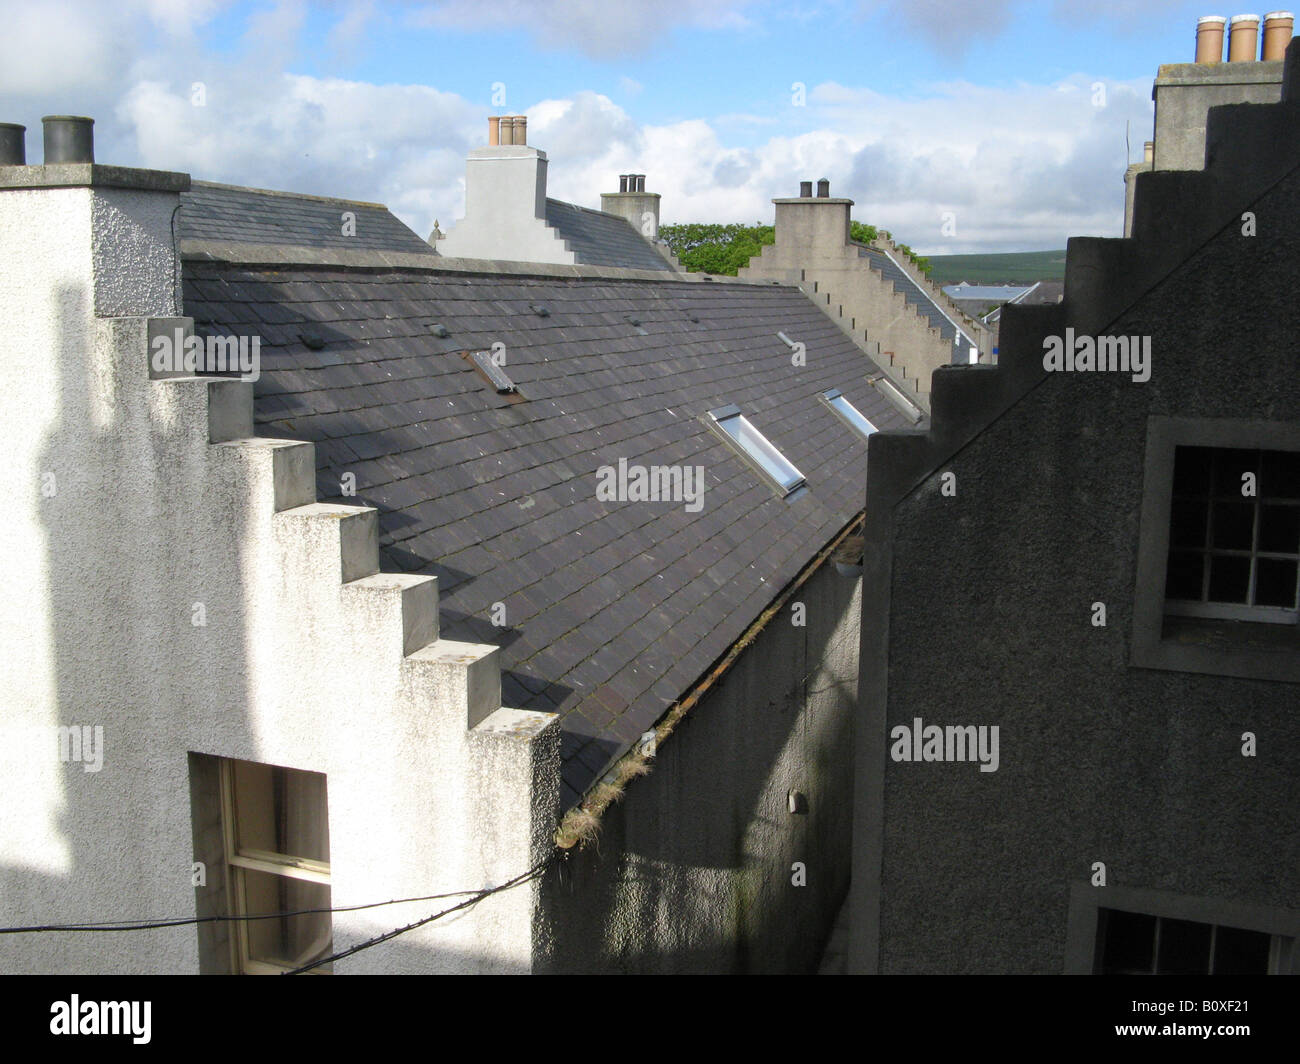 Some of the houses in Kirkwall, the capital of the Orkney Islands in Scotland, were built in the 16th century. - Stock Image